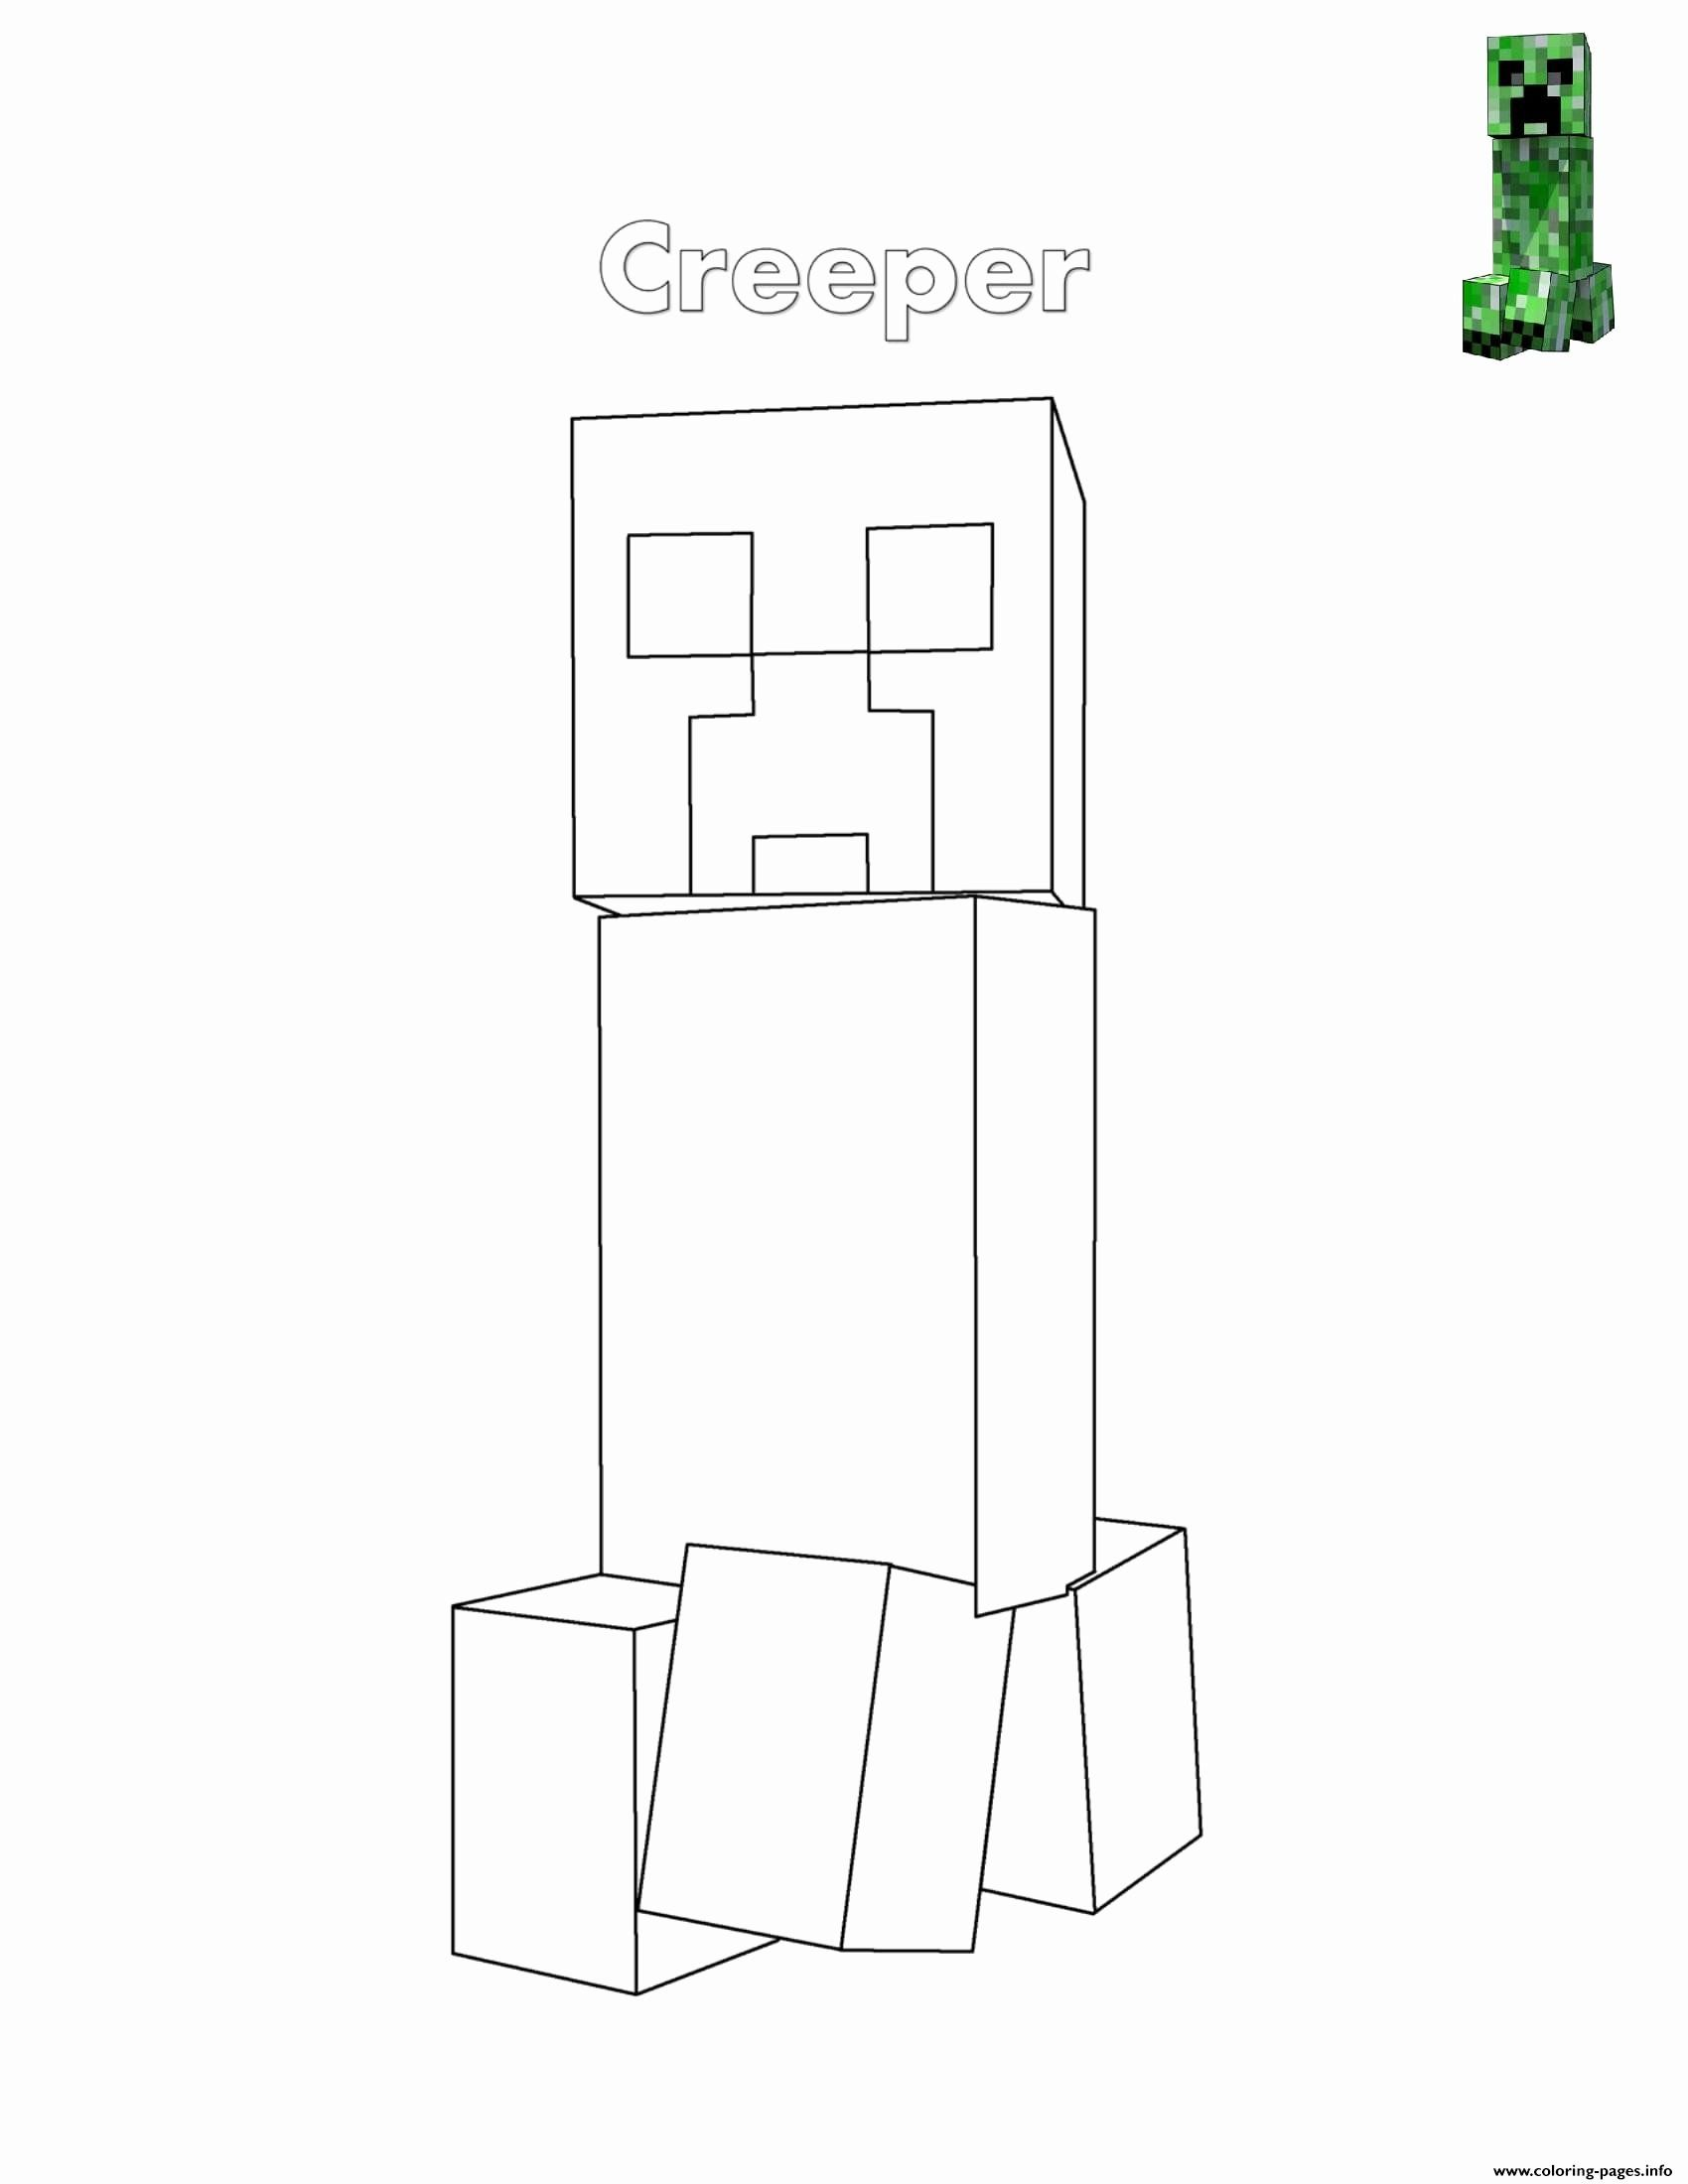 Minecraft Creeper Coloring Page Favourite Creeper Minecraftring Pages Creeper Printable Minecraft Coloring Pages Drawing Books For Kids Coloring Pages